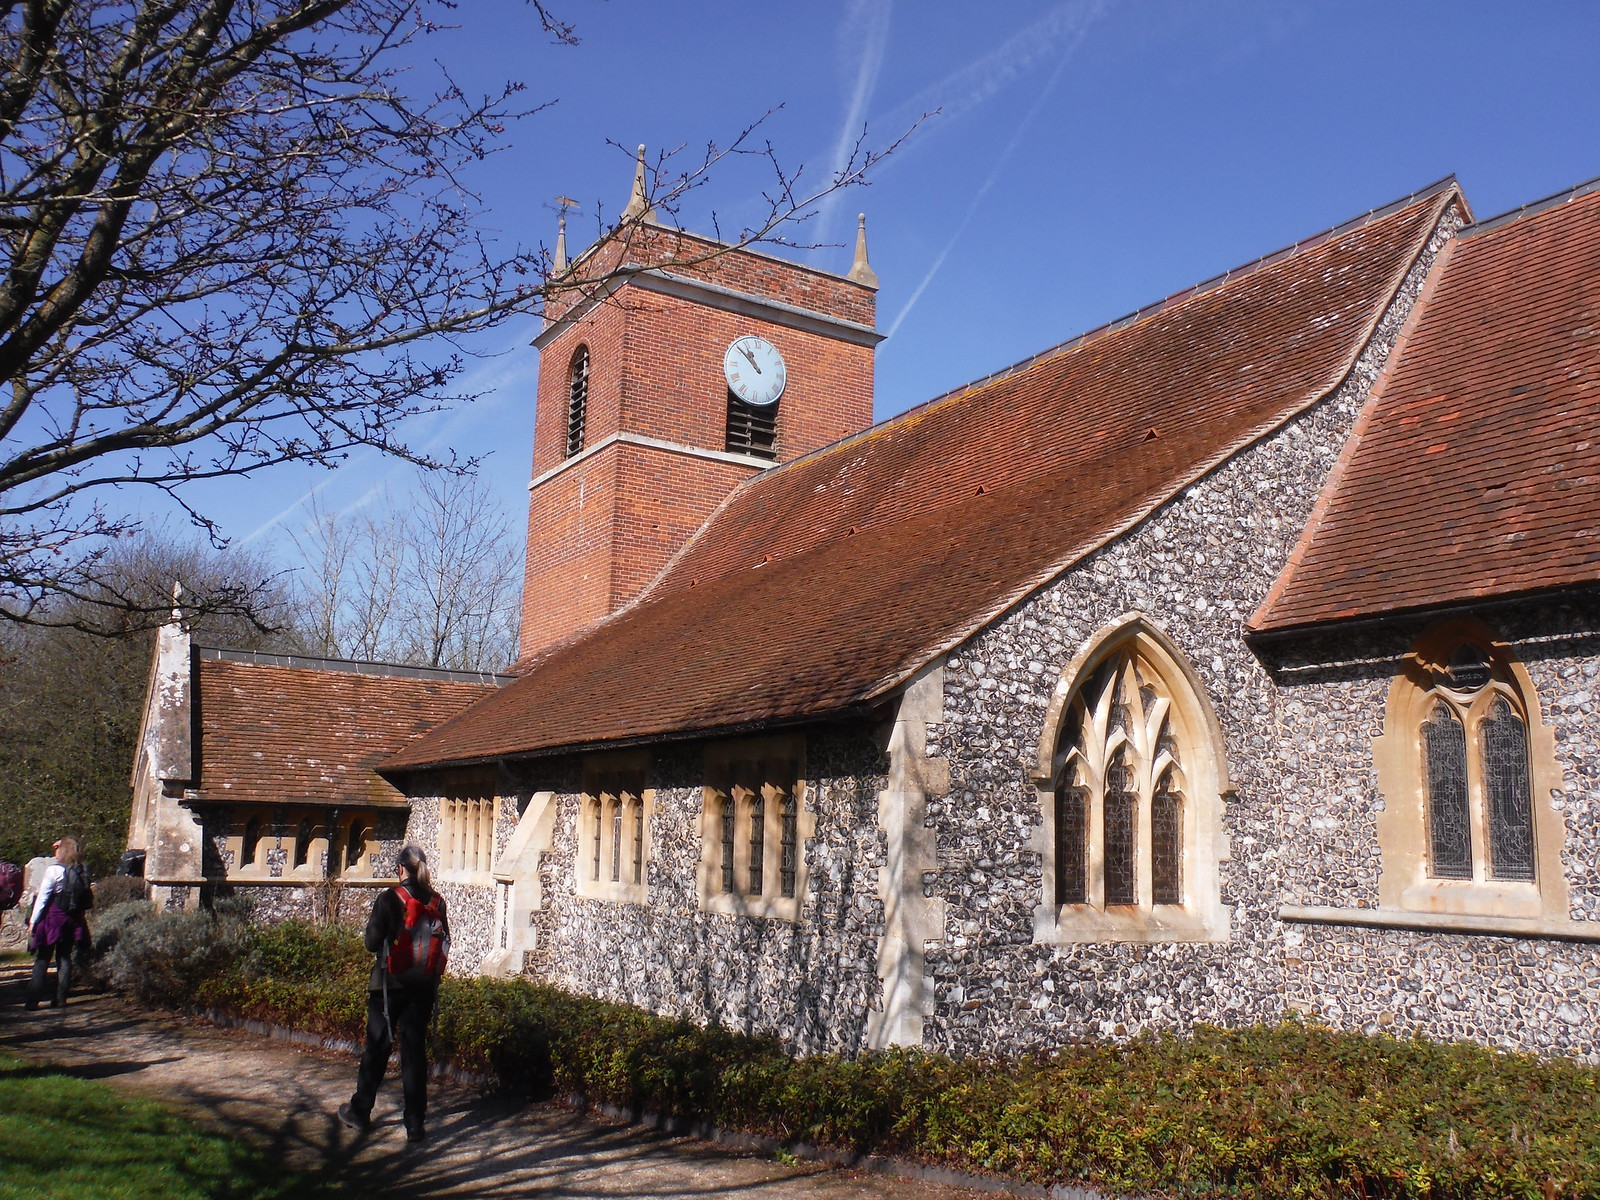 St. Mary's, Beenham Valence SWC Walk 260 Aldermaston to Woolhampton [Midgham Station] (via Frilsham)